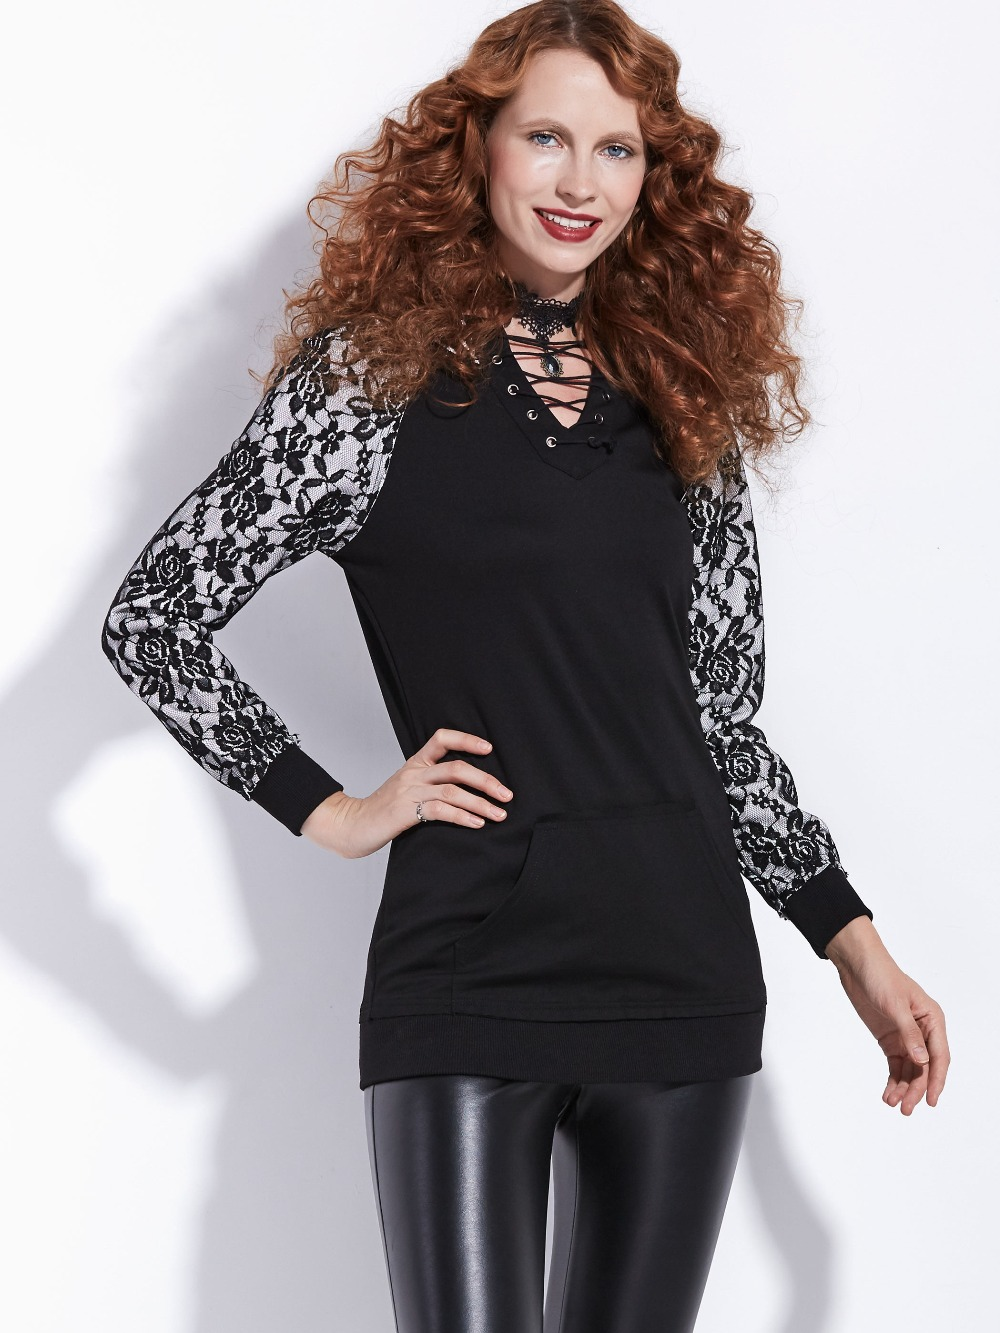 2018 Gothic Hoodies Black Women Vinage Blouse Casual Shirts Retro Tops Lace-Up elegant Gothics Hoodies spring autumn